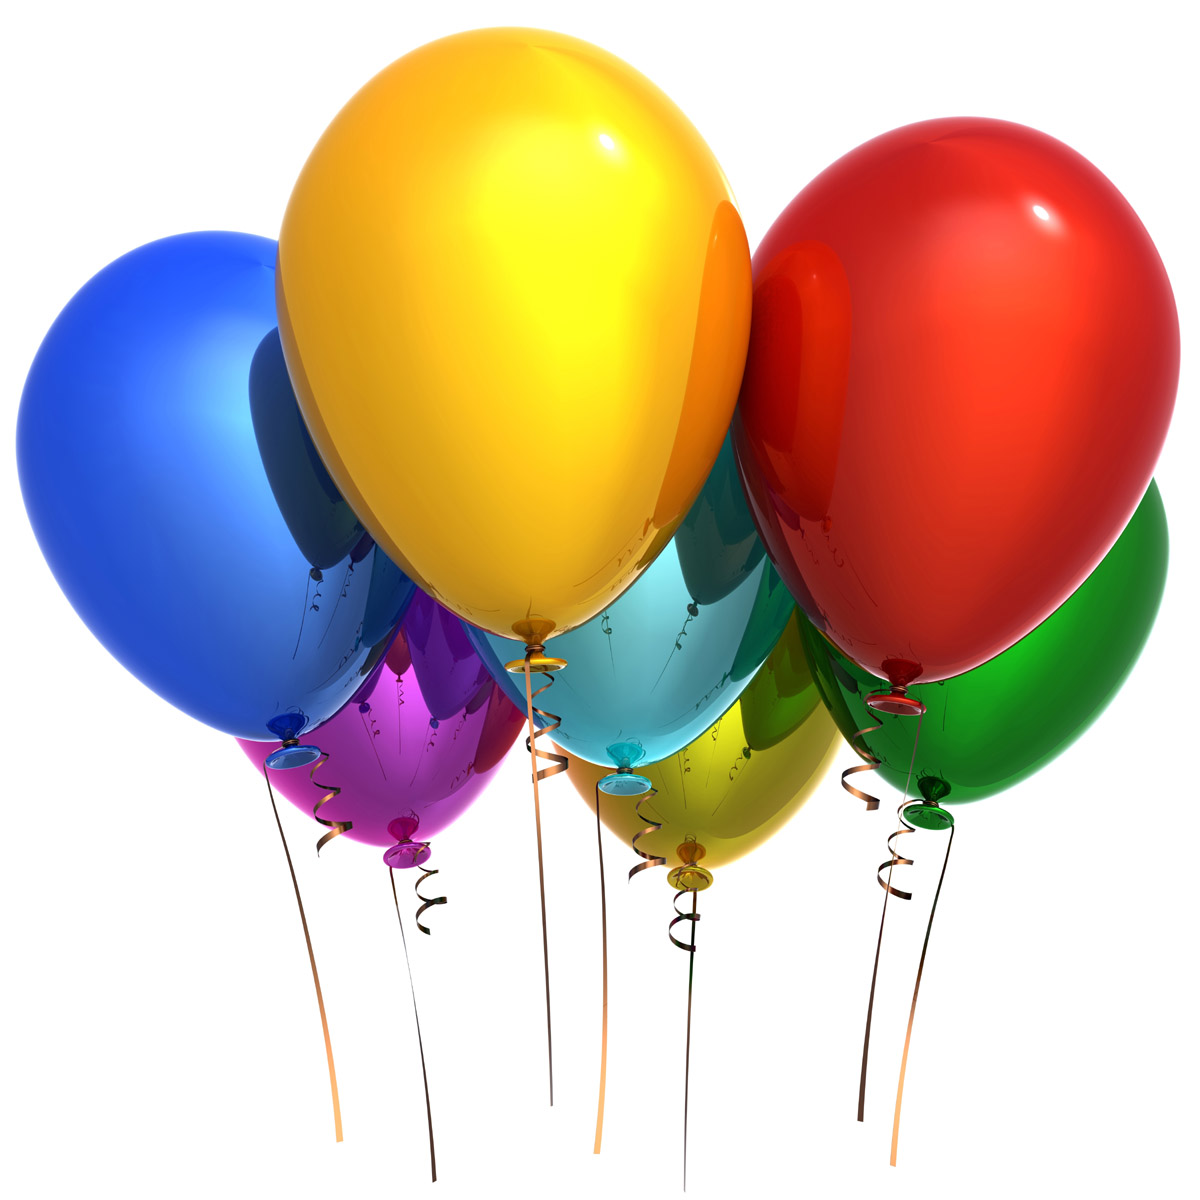 Colorful balloons 16226